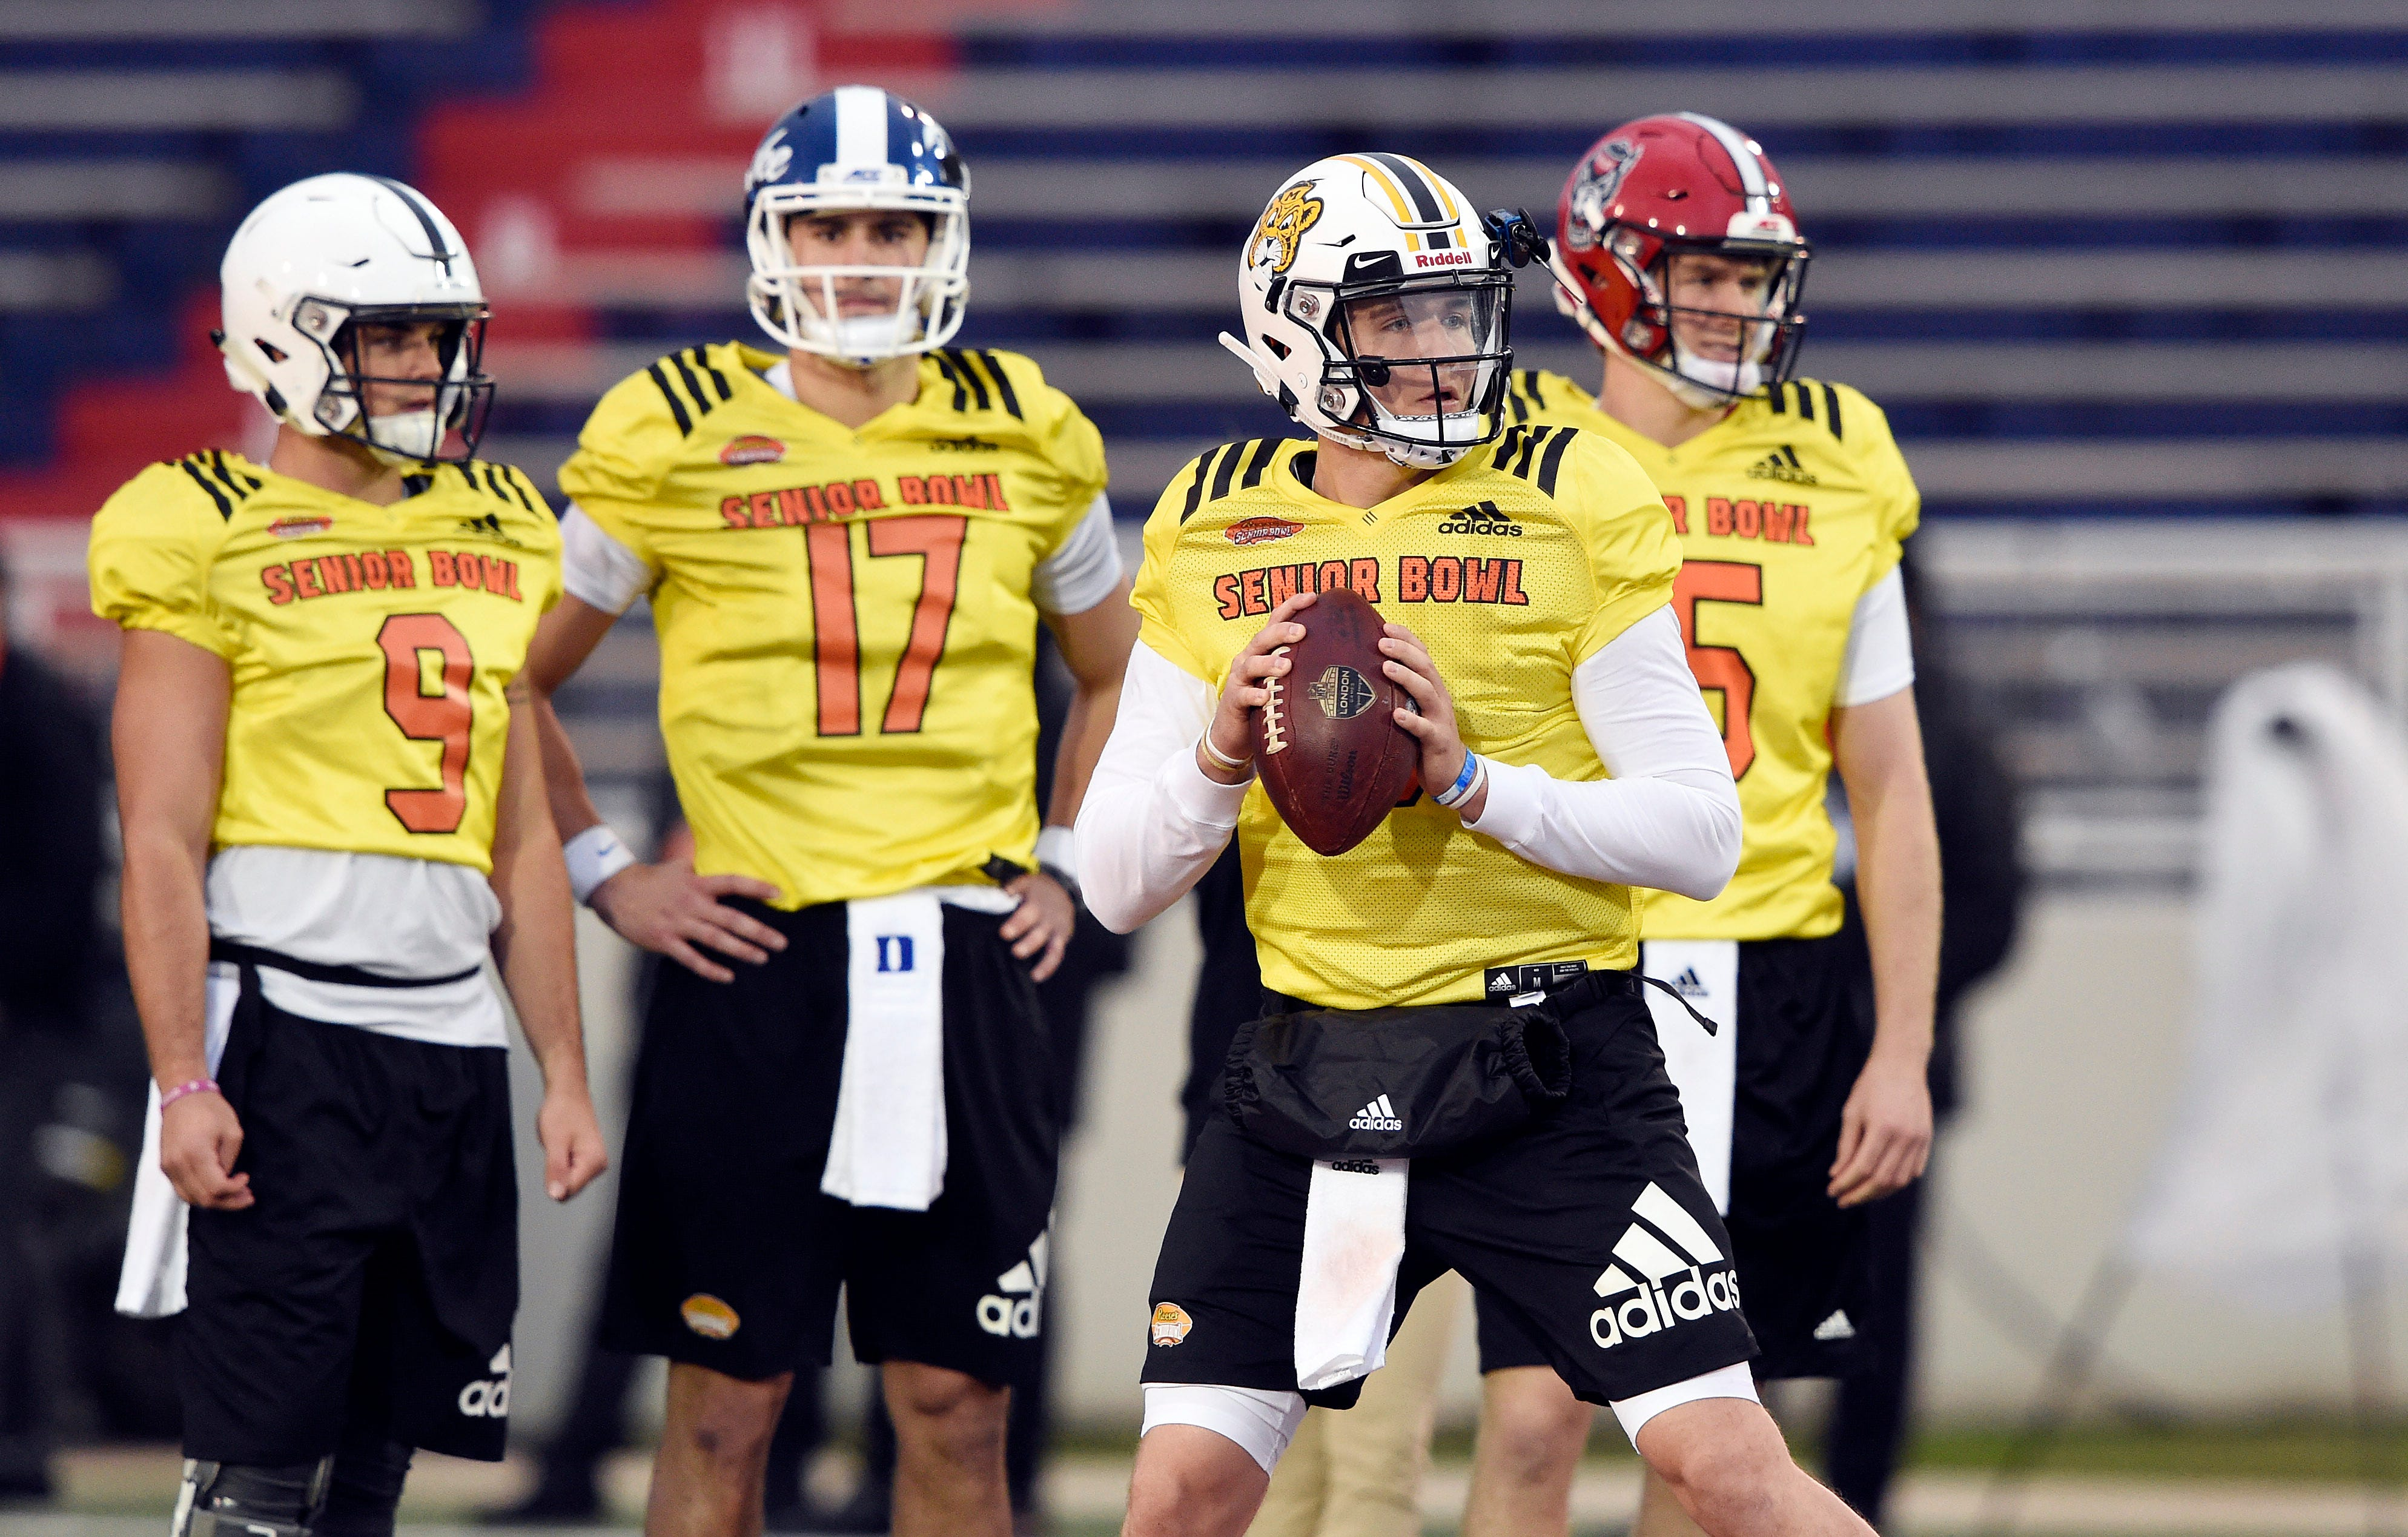 Senior Bowl: Five things we learned from the week of practices